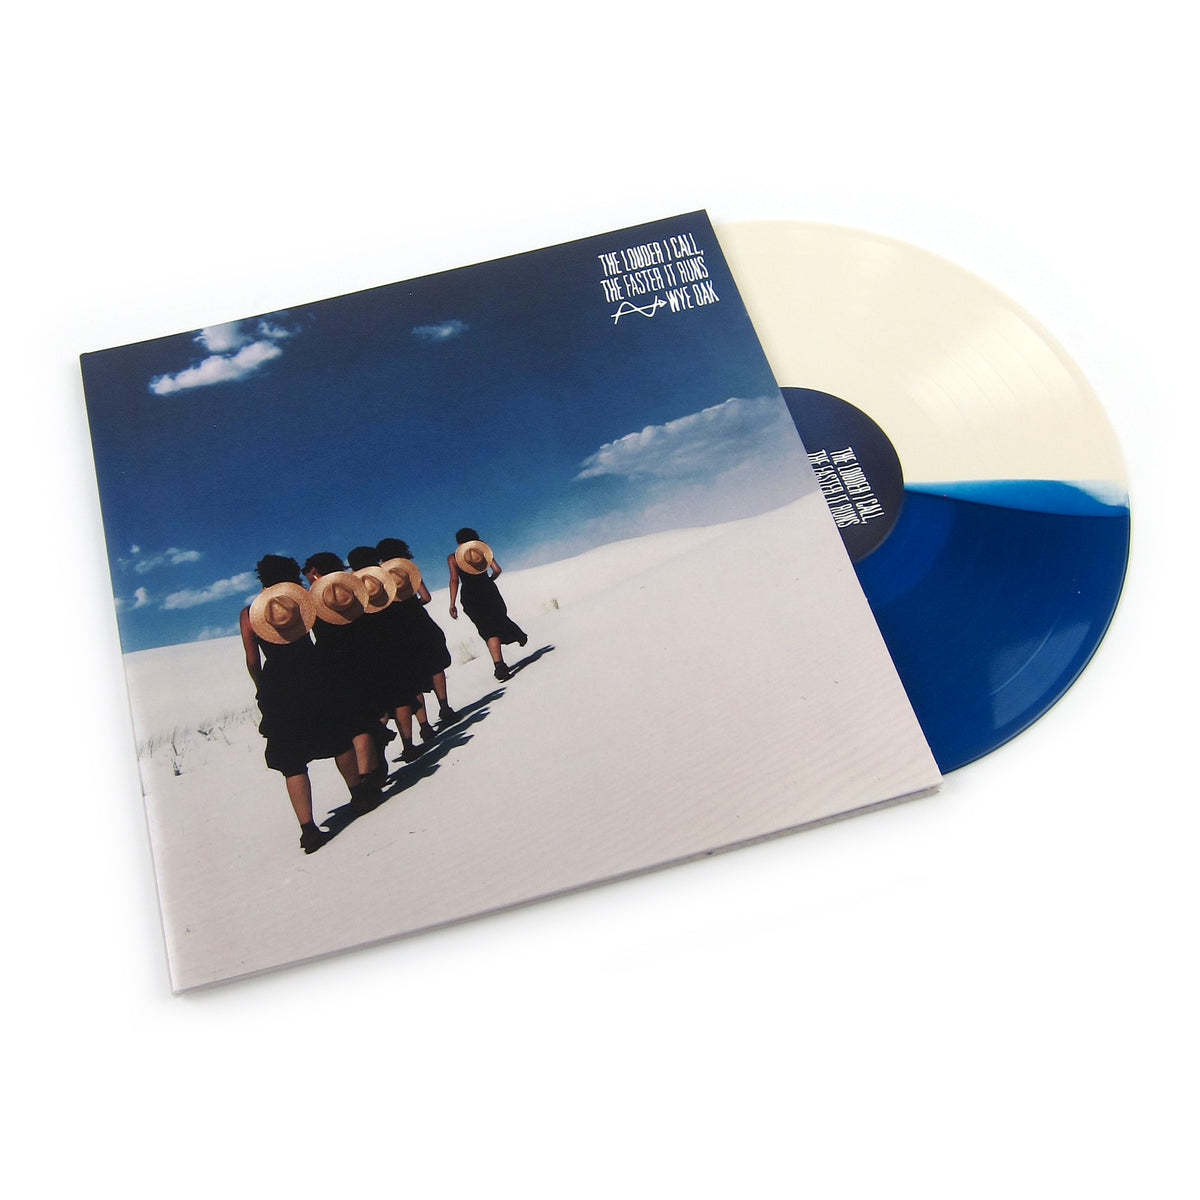 Wye Oak: The Louder I Call, The Faster It Runs (Colored Vinyl) Vinyl LP